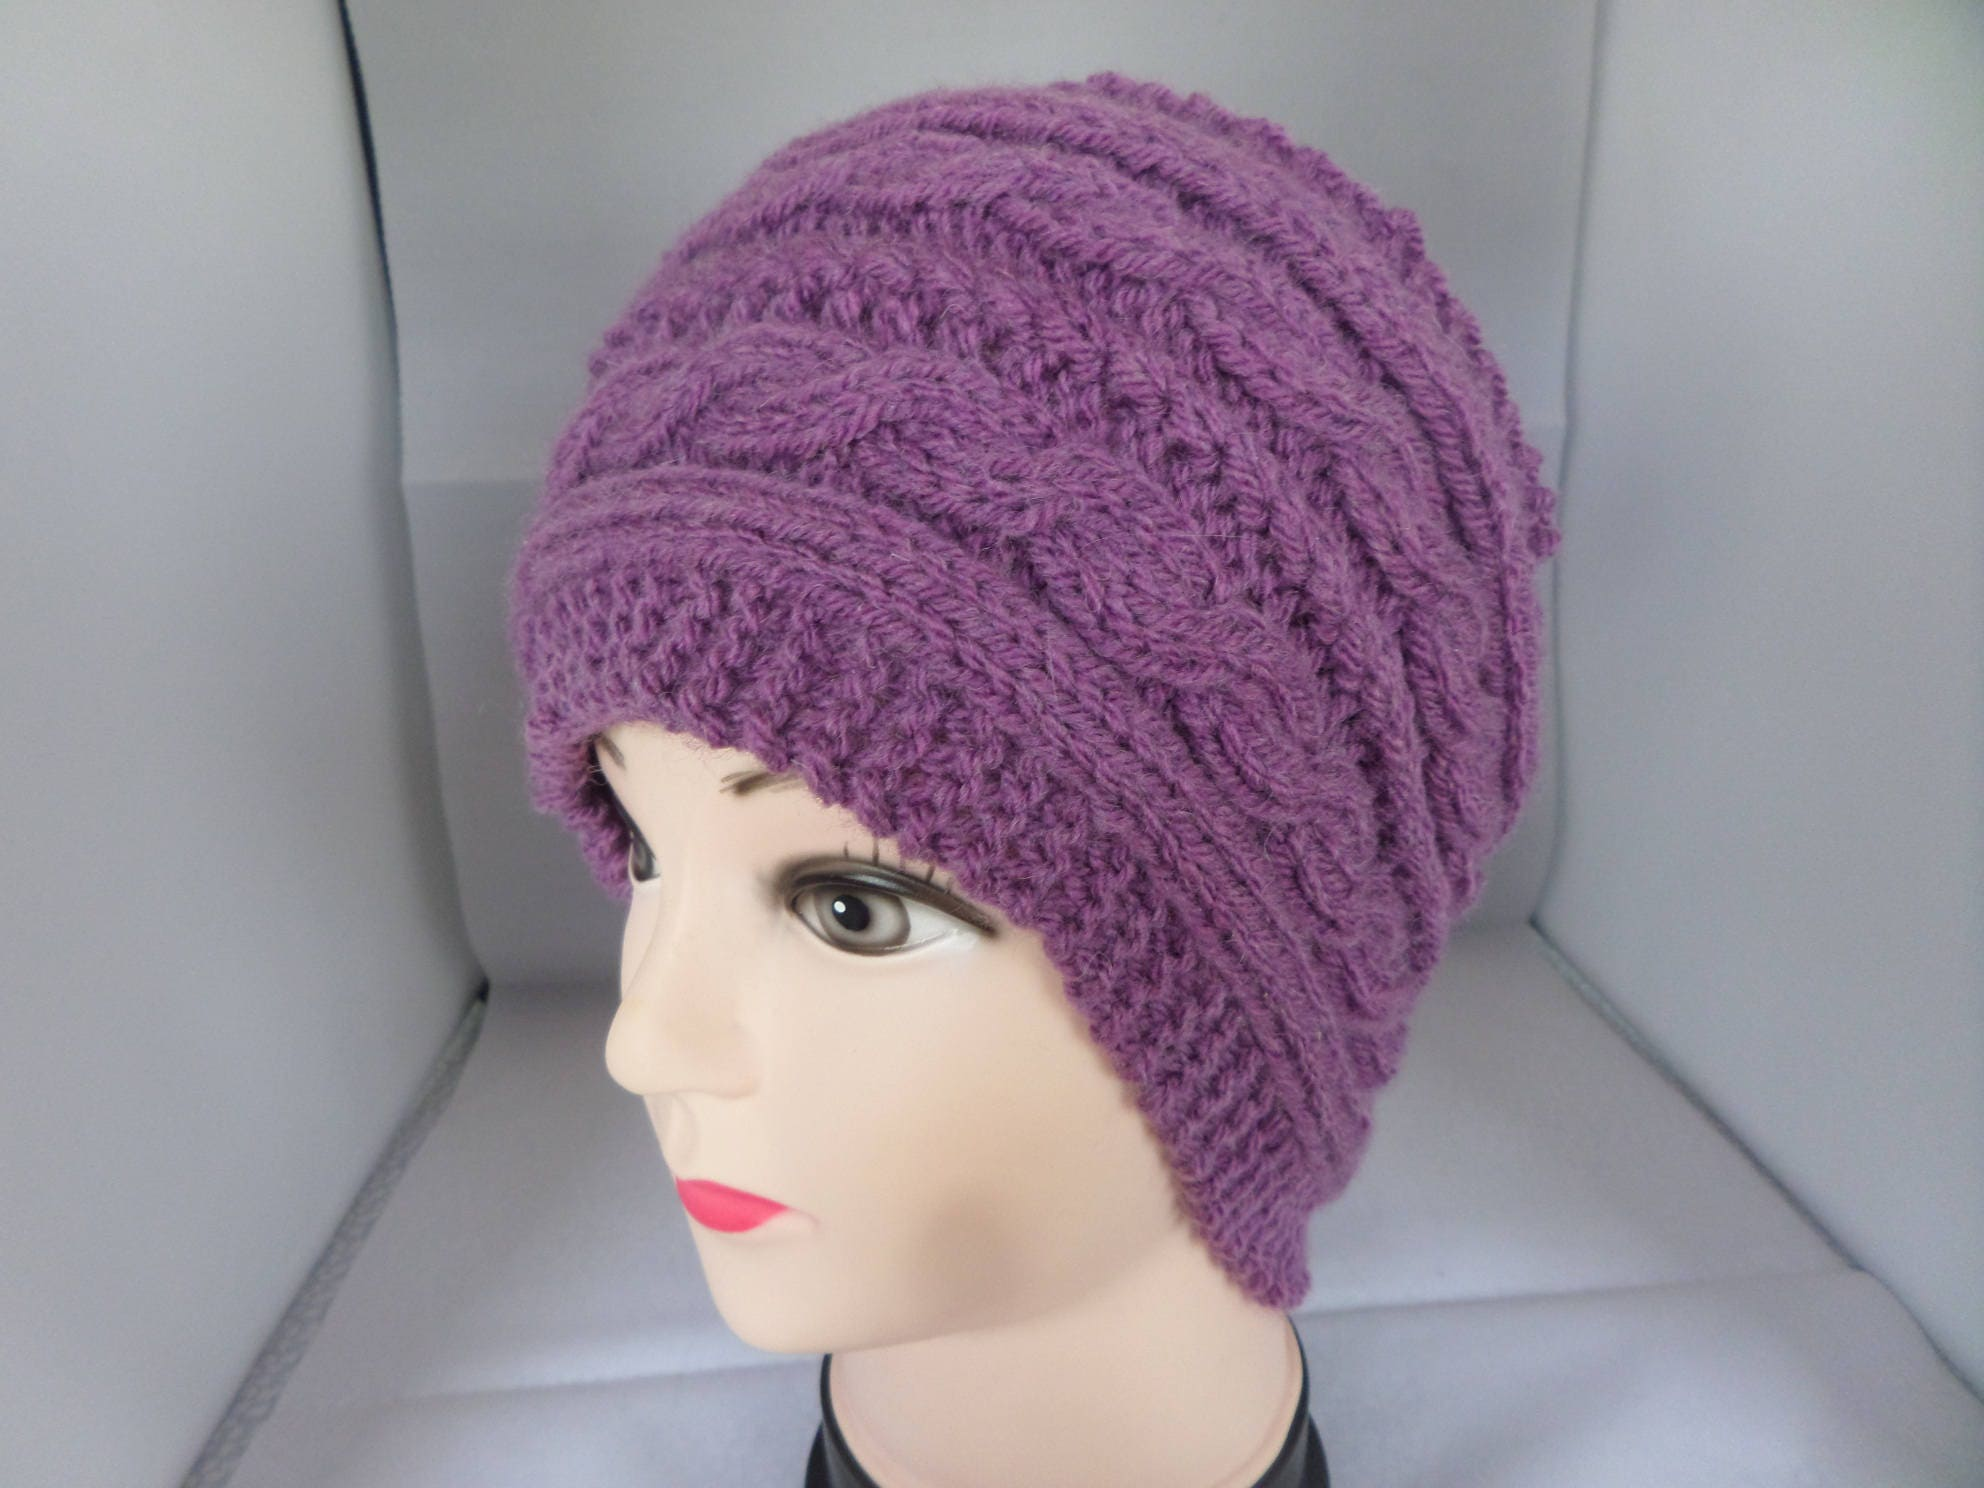 fe8c22be2 Knitted ear warmer, knitted headband, Heather colour band, cable pattern,  Aran weight yarn, MRH067, country style, cable knitted